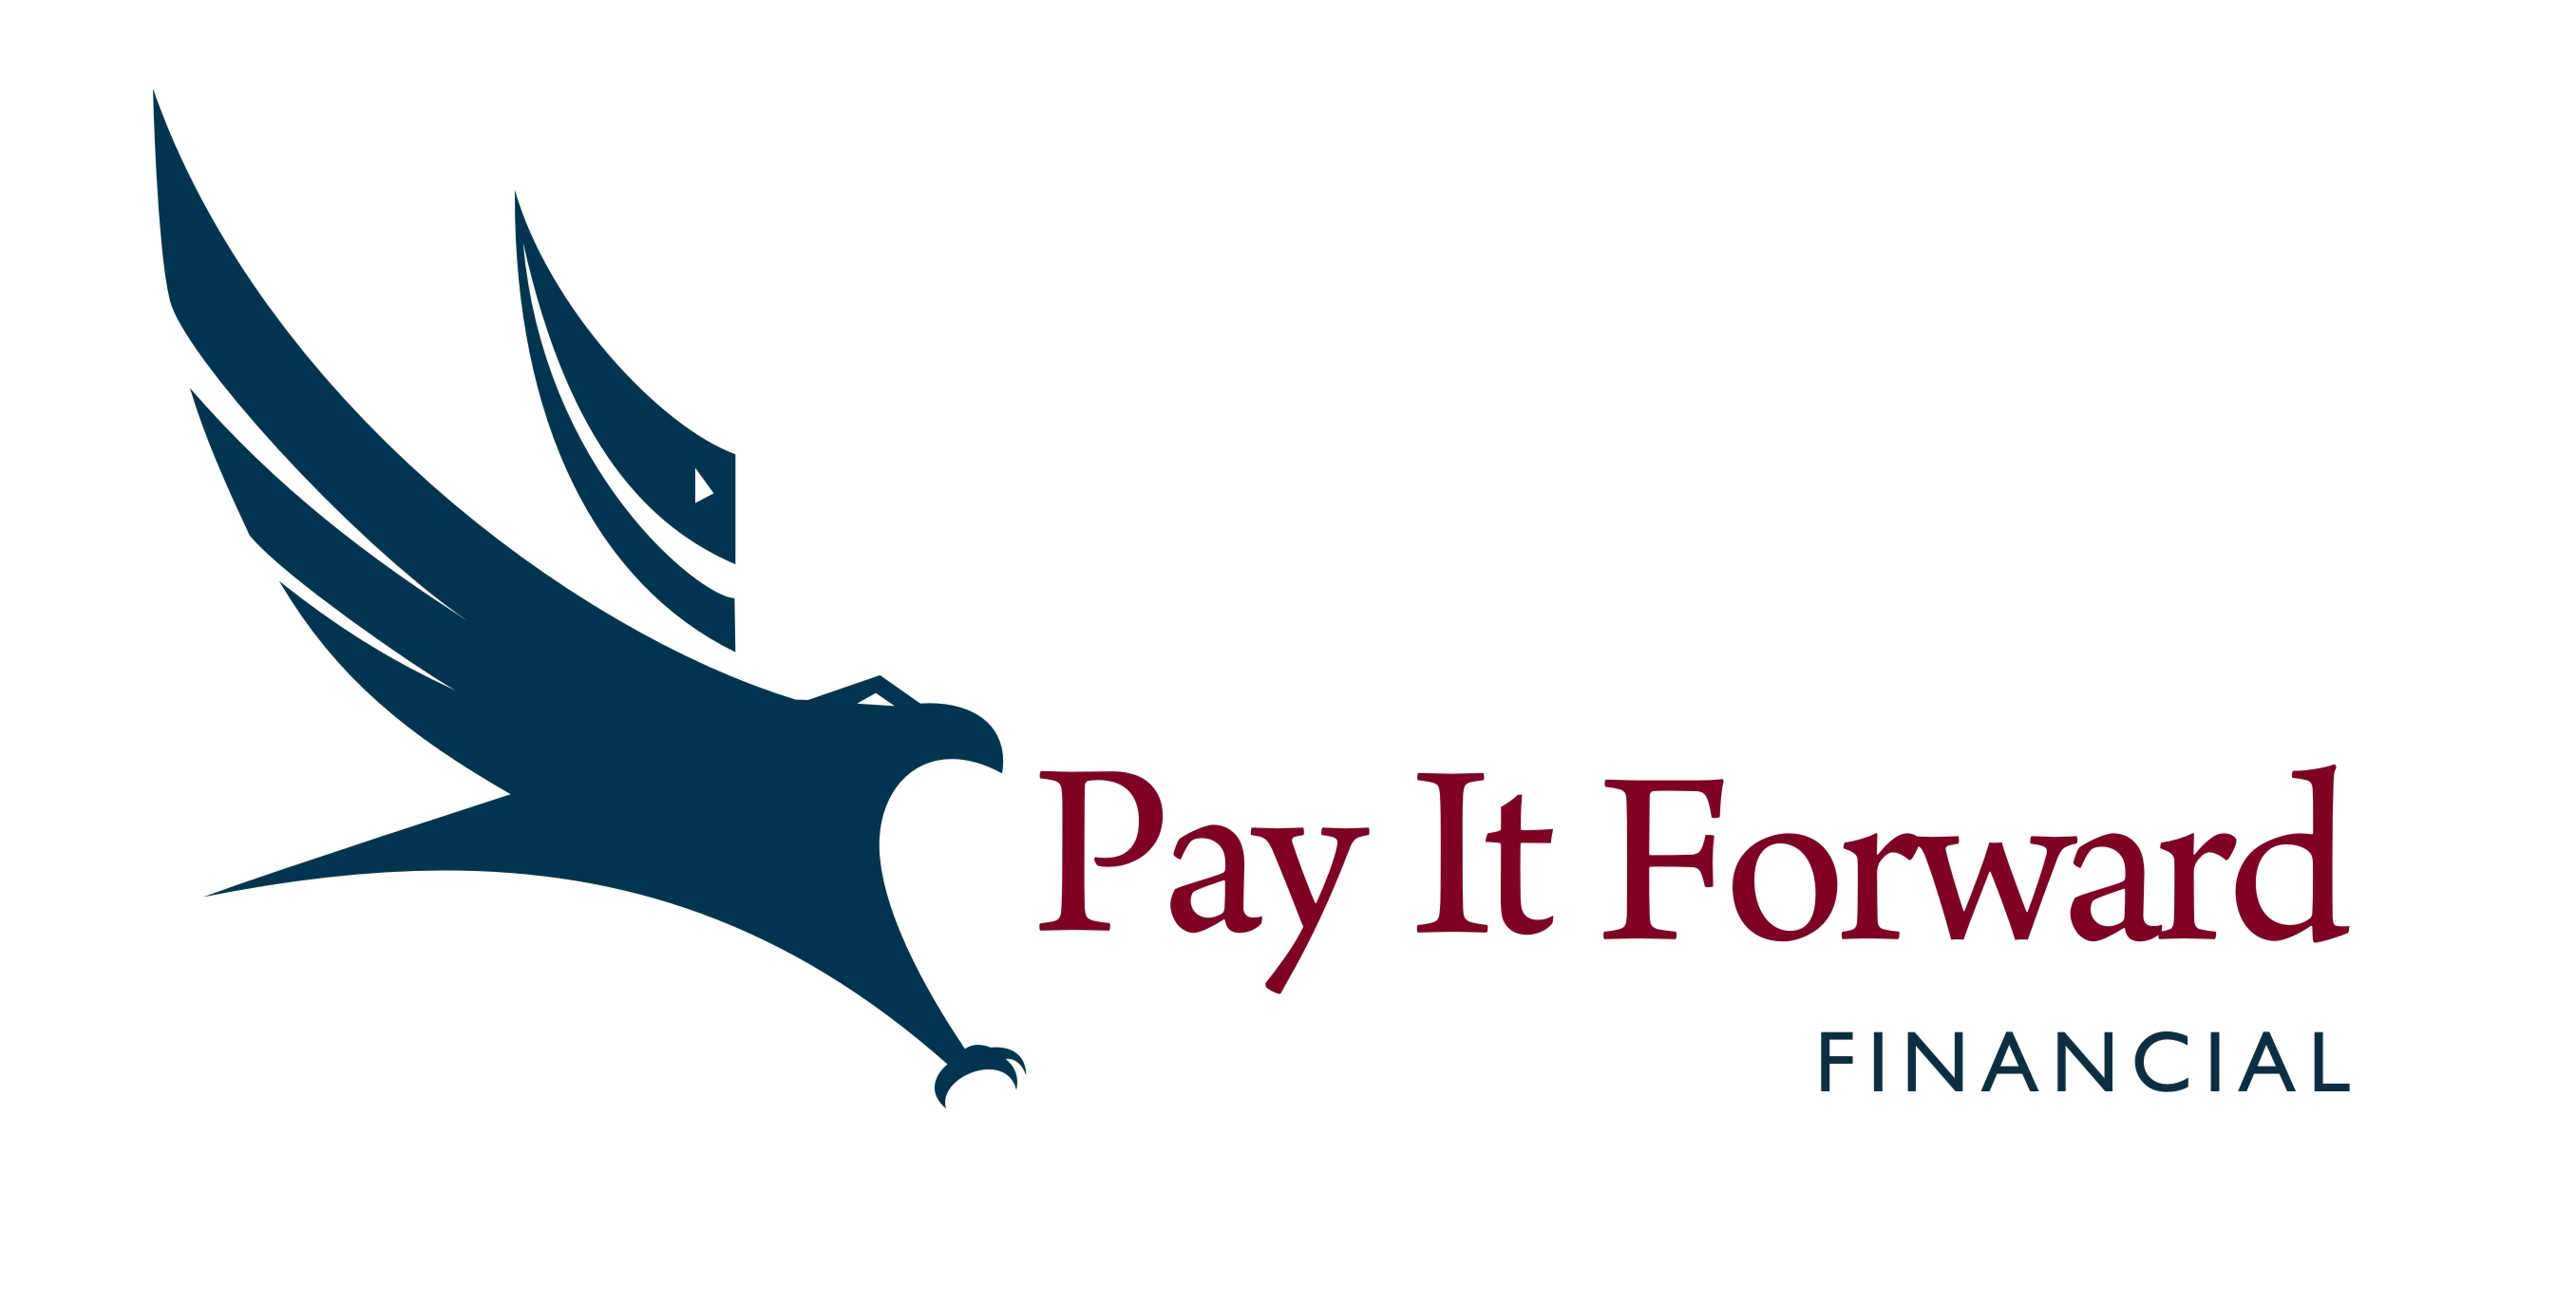 Pay It Forward Financial Nationwide Processing For Small Businesses